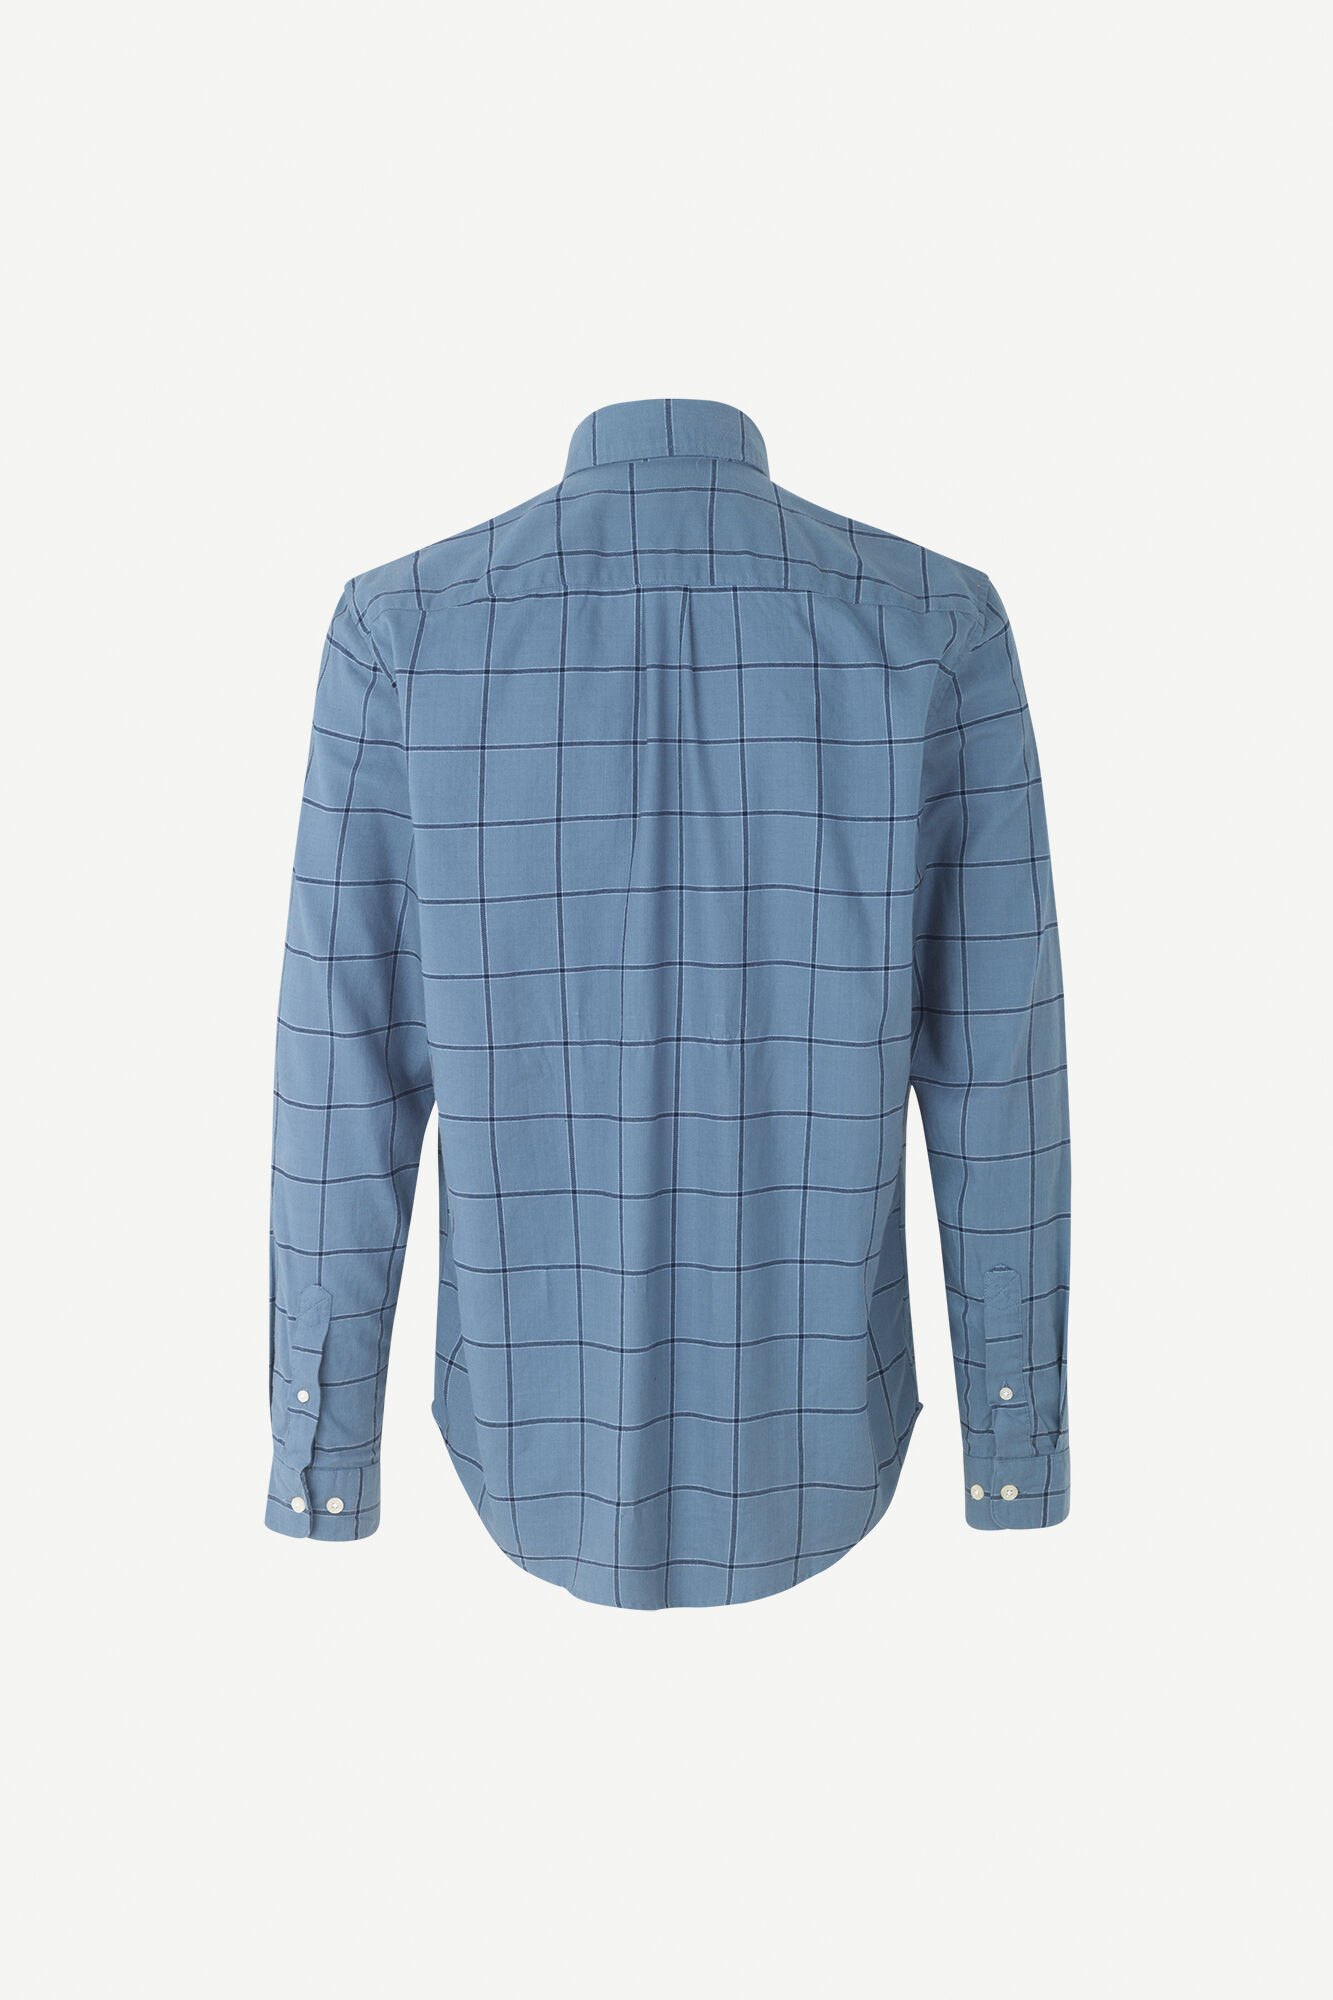 Liam BA shirt 11377, BLUE MIRAGE CH.